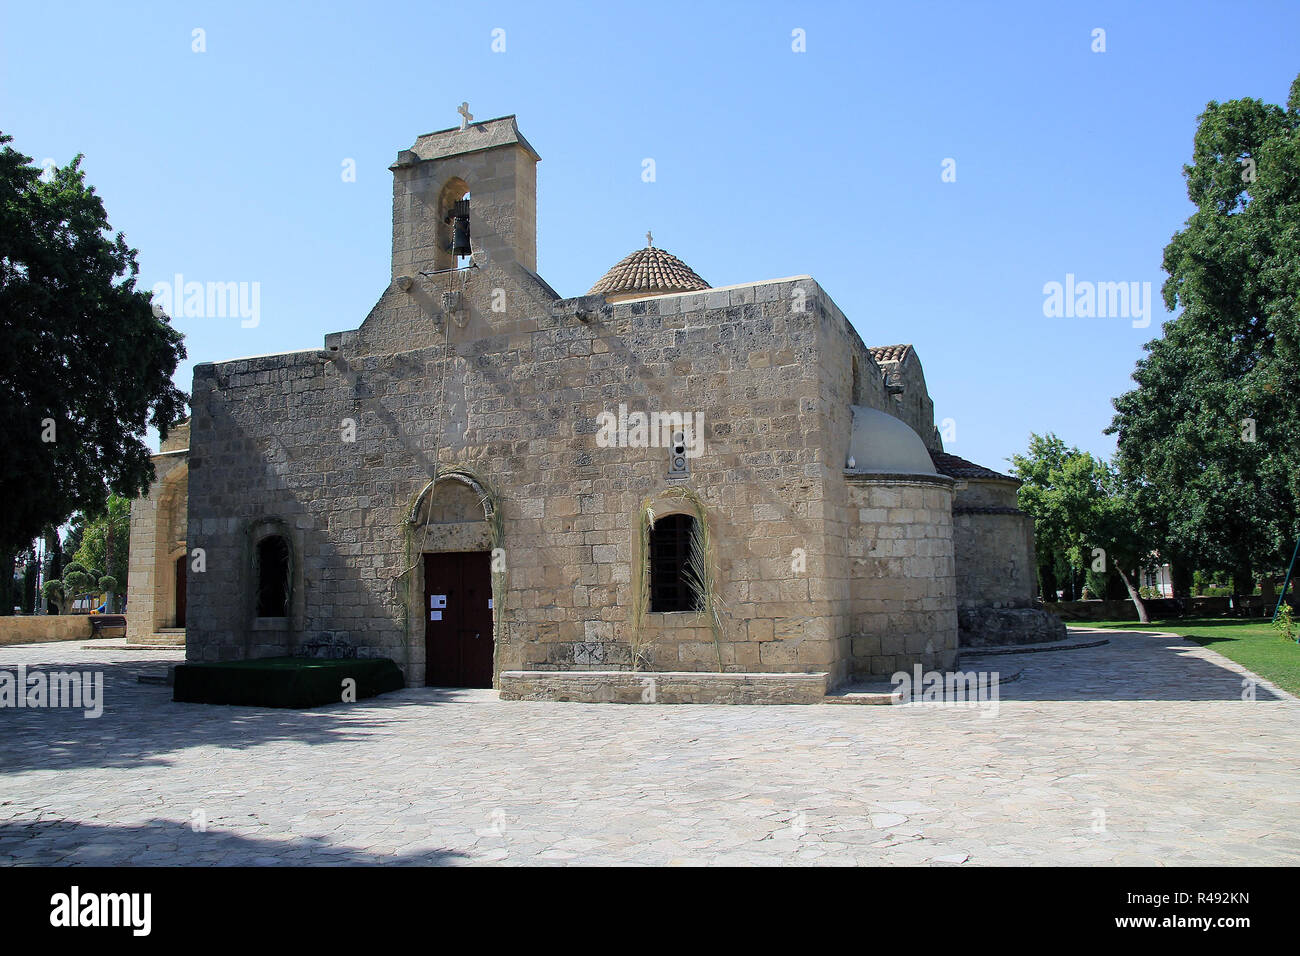 panagia angeloktistos church in kiti,cyprus Stock Photo